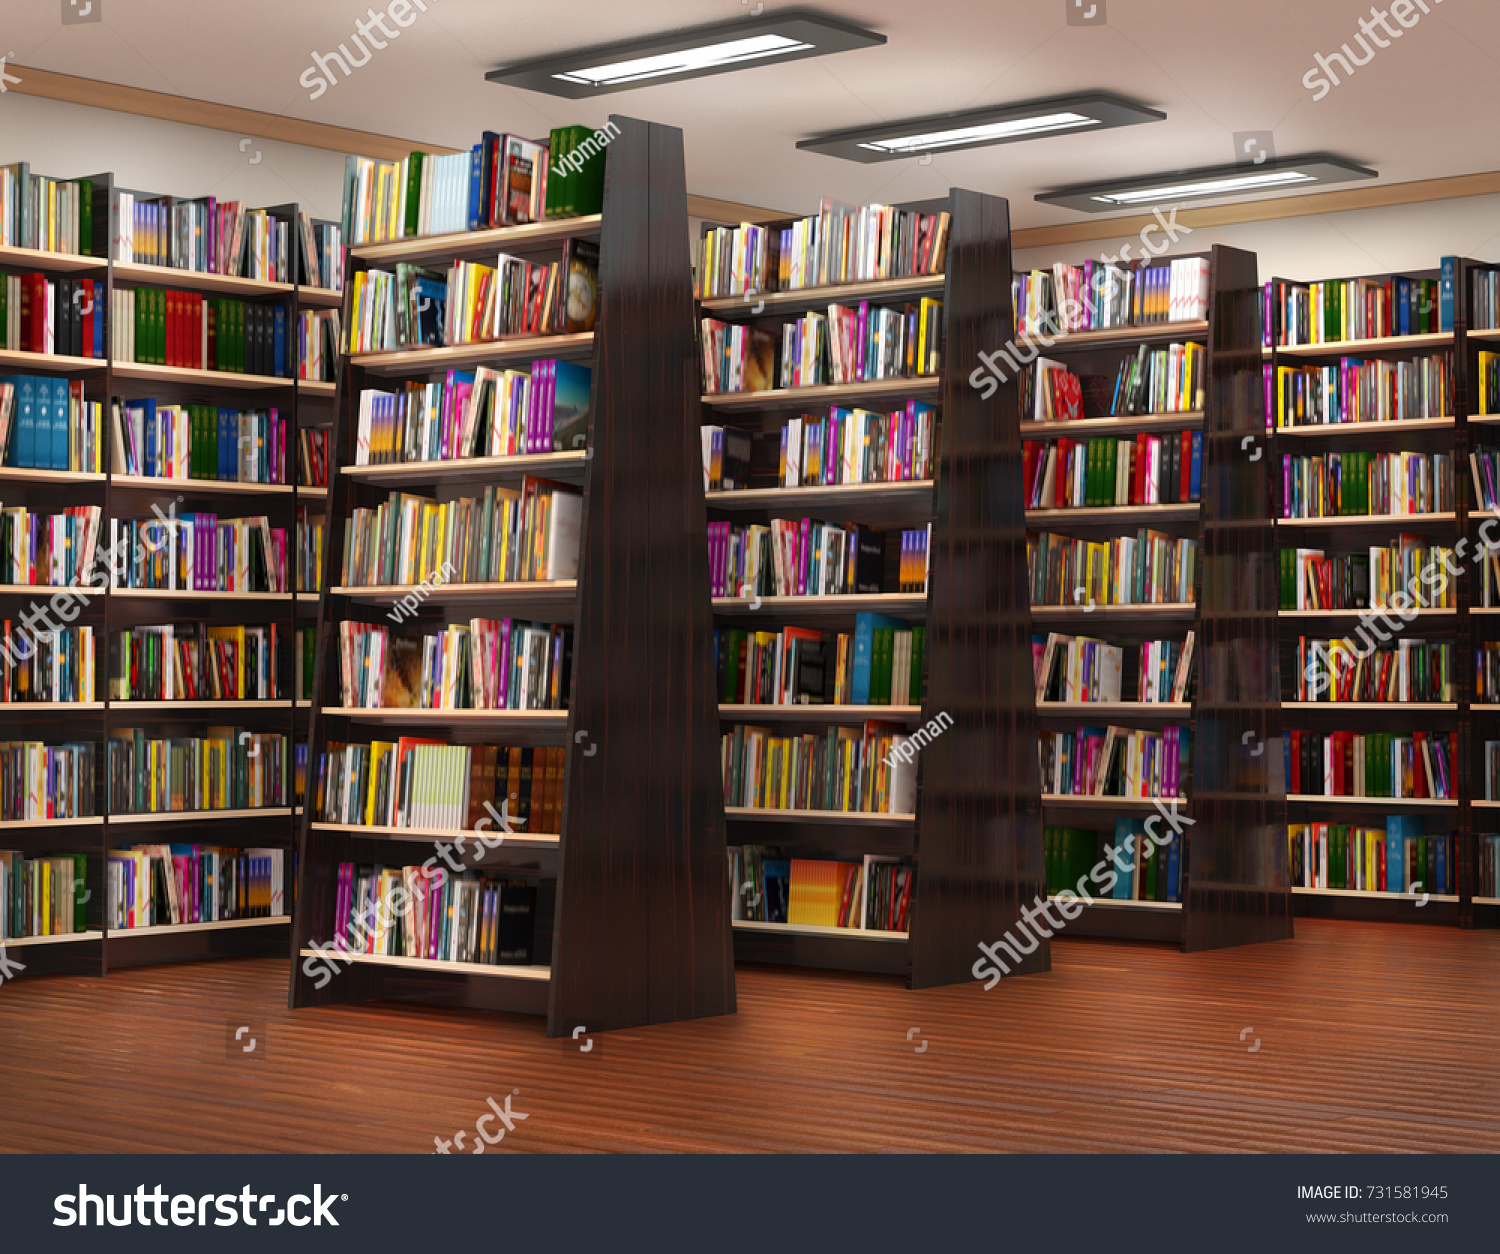 Bookshelf in book store 3d illustration Bookshelf